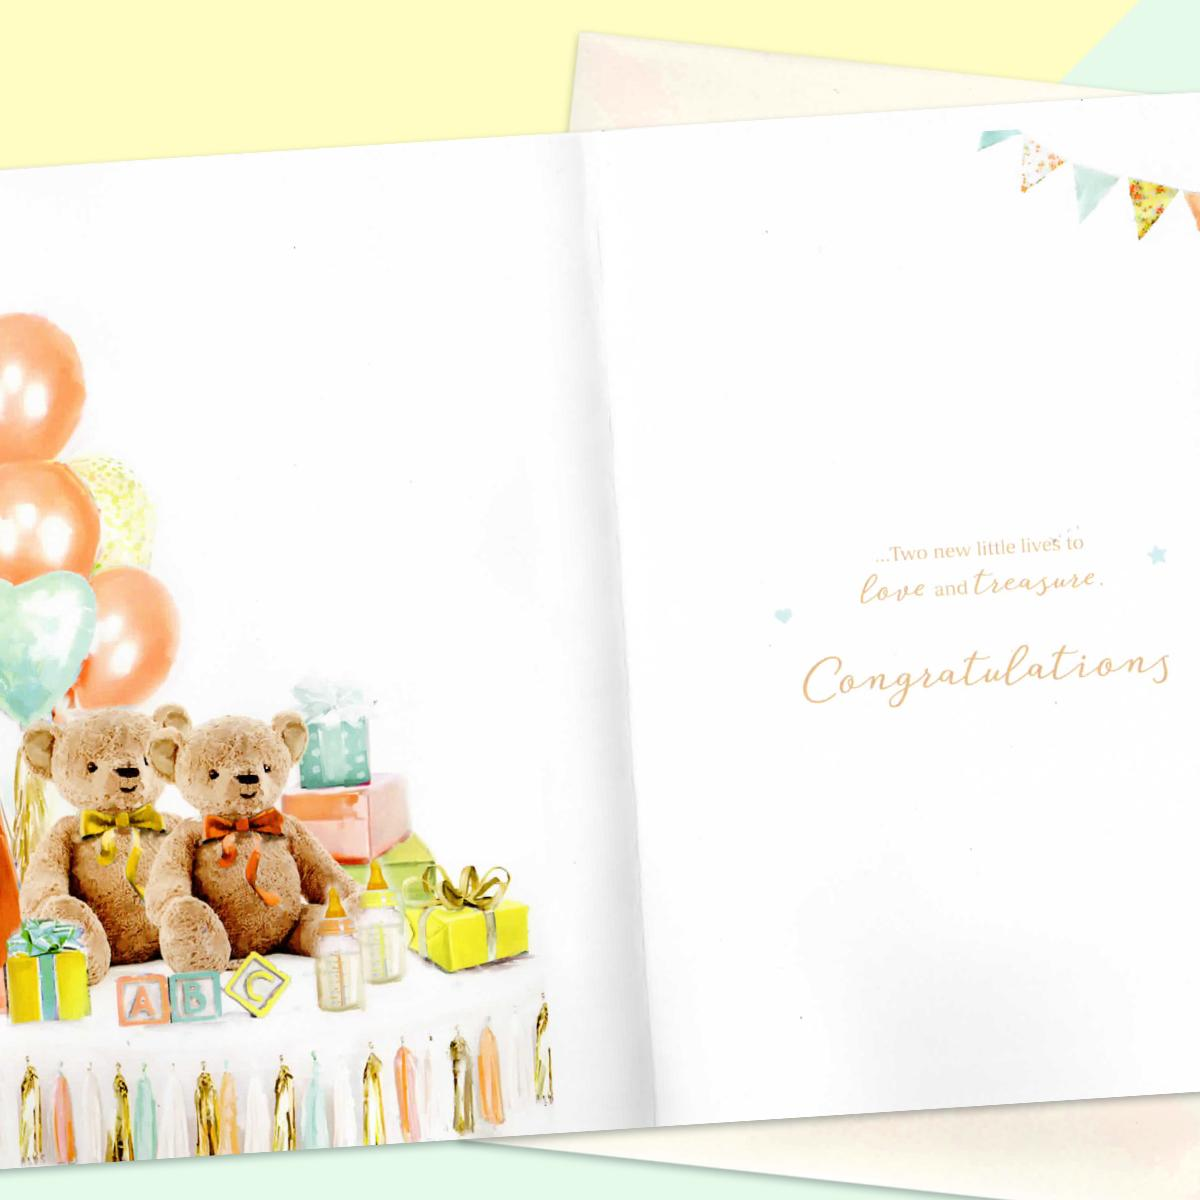 Inside Of Birth Of Twins Card Showing Layout And Printed Text